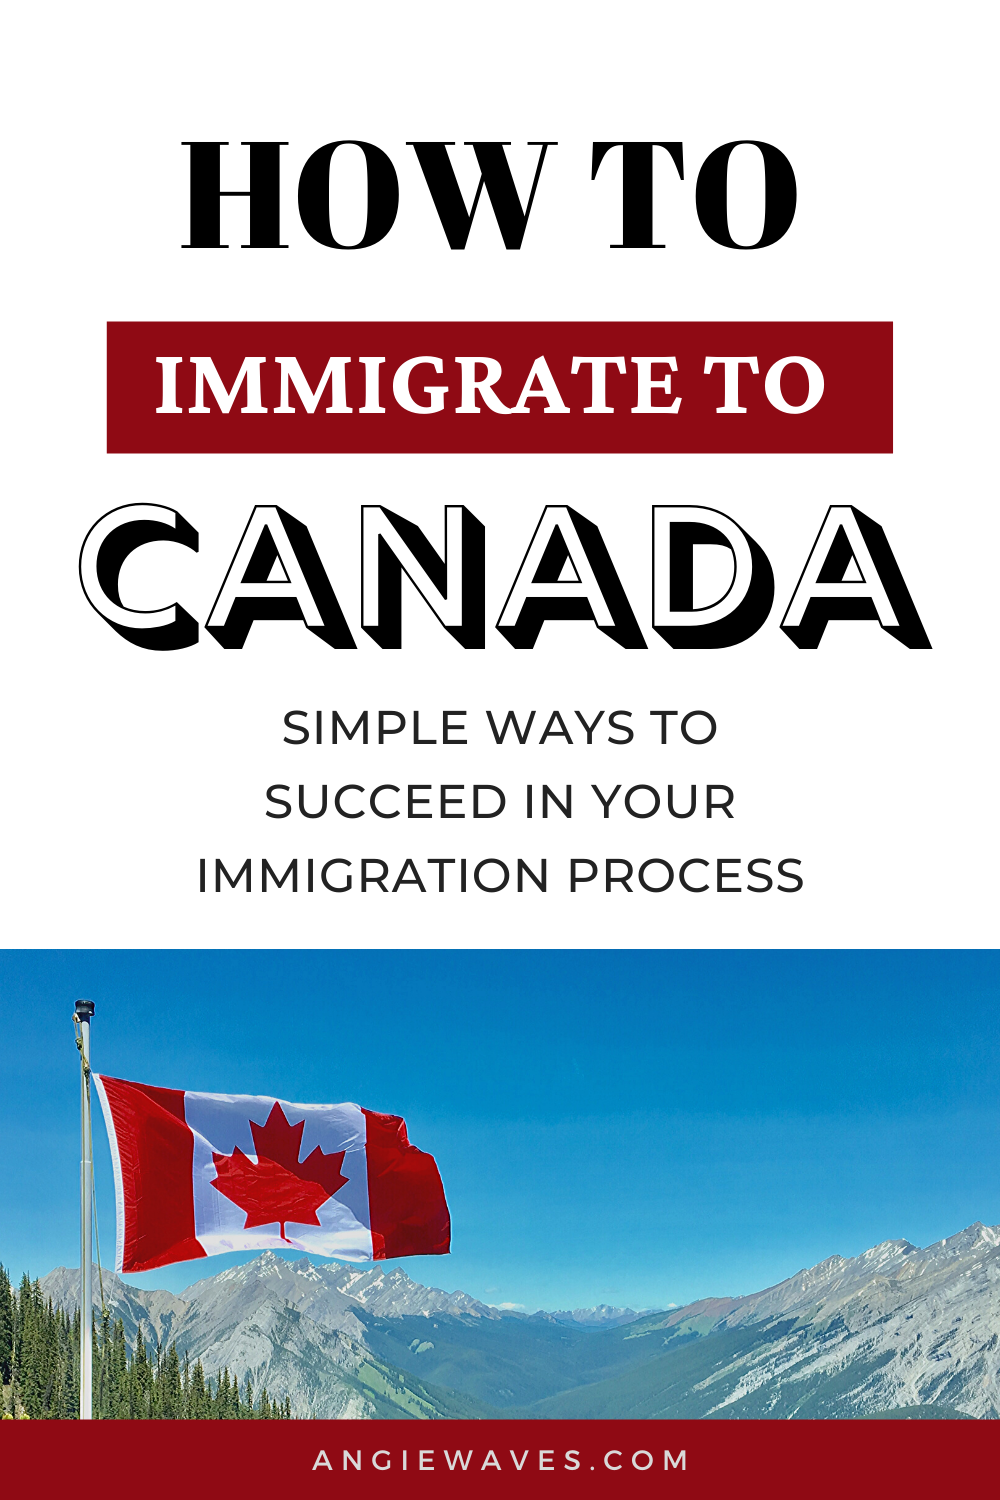 How To Immigrate To Canada Angiewaves Lifestyle Career Moving To Canada Immigration Canada Canada